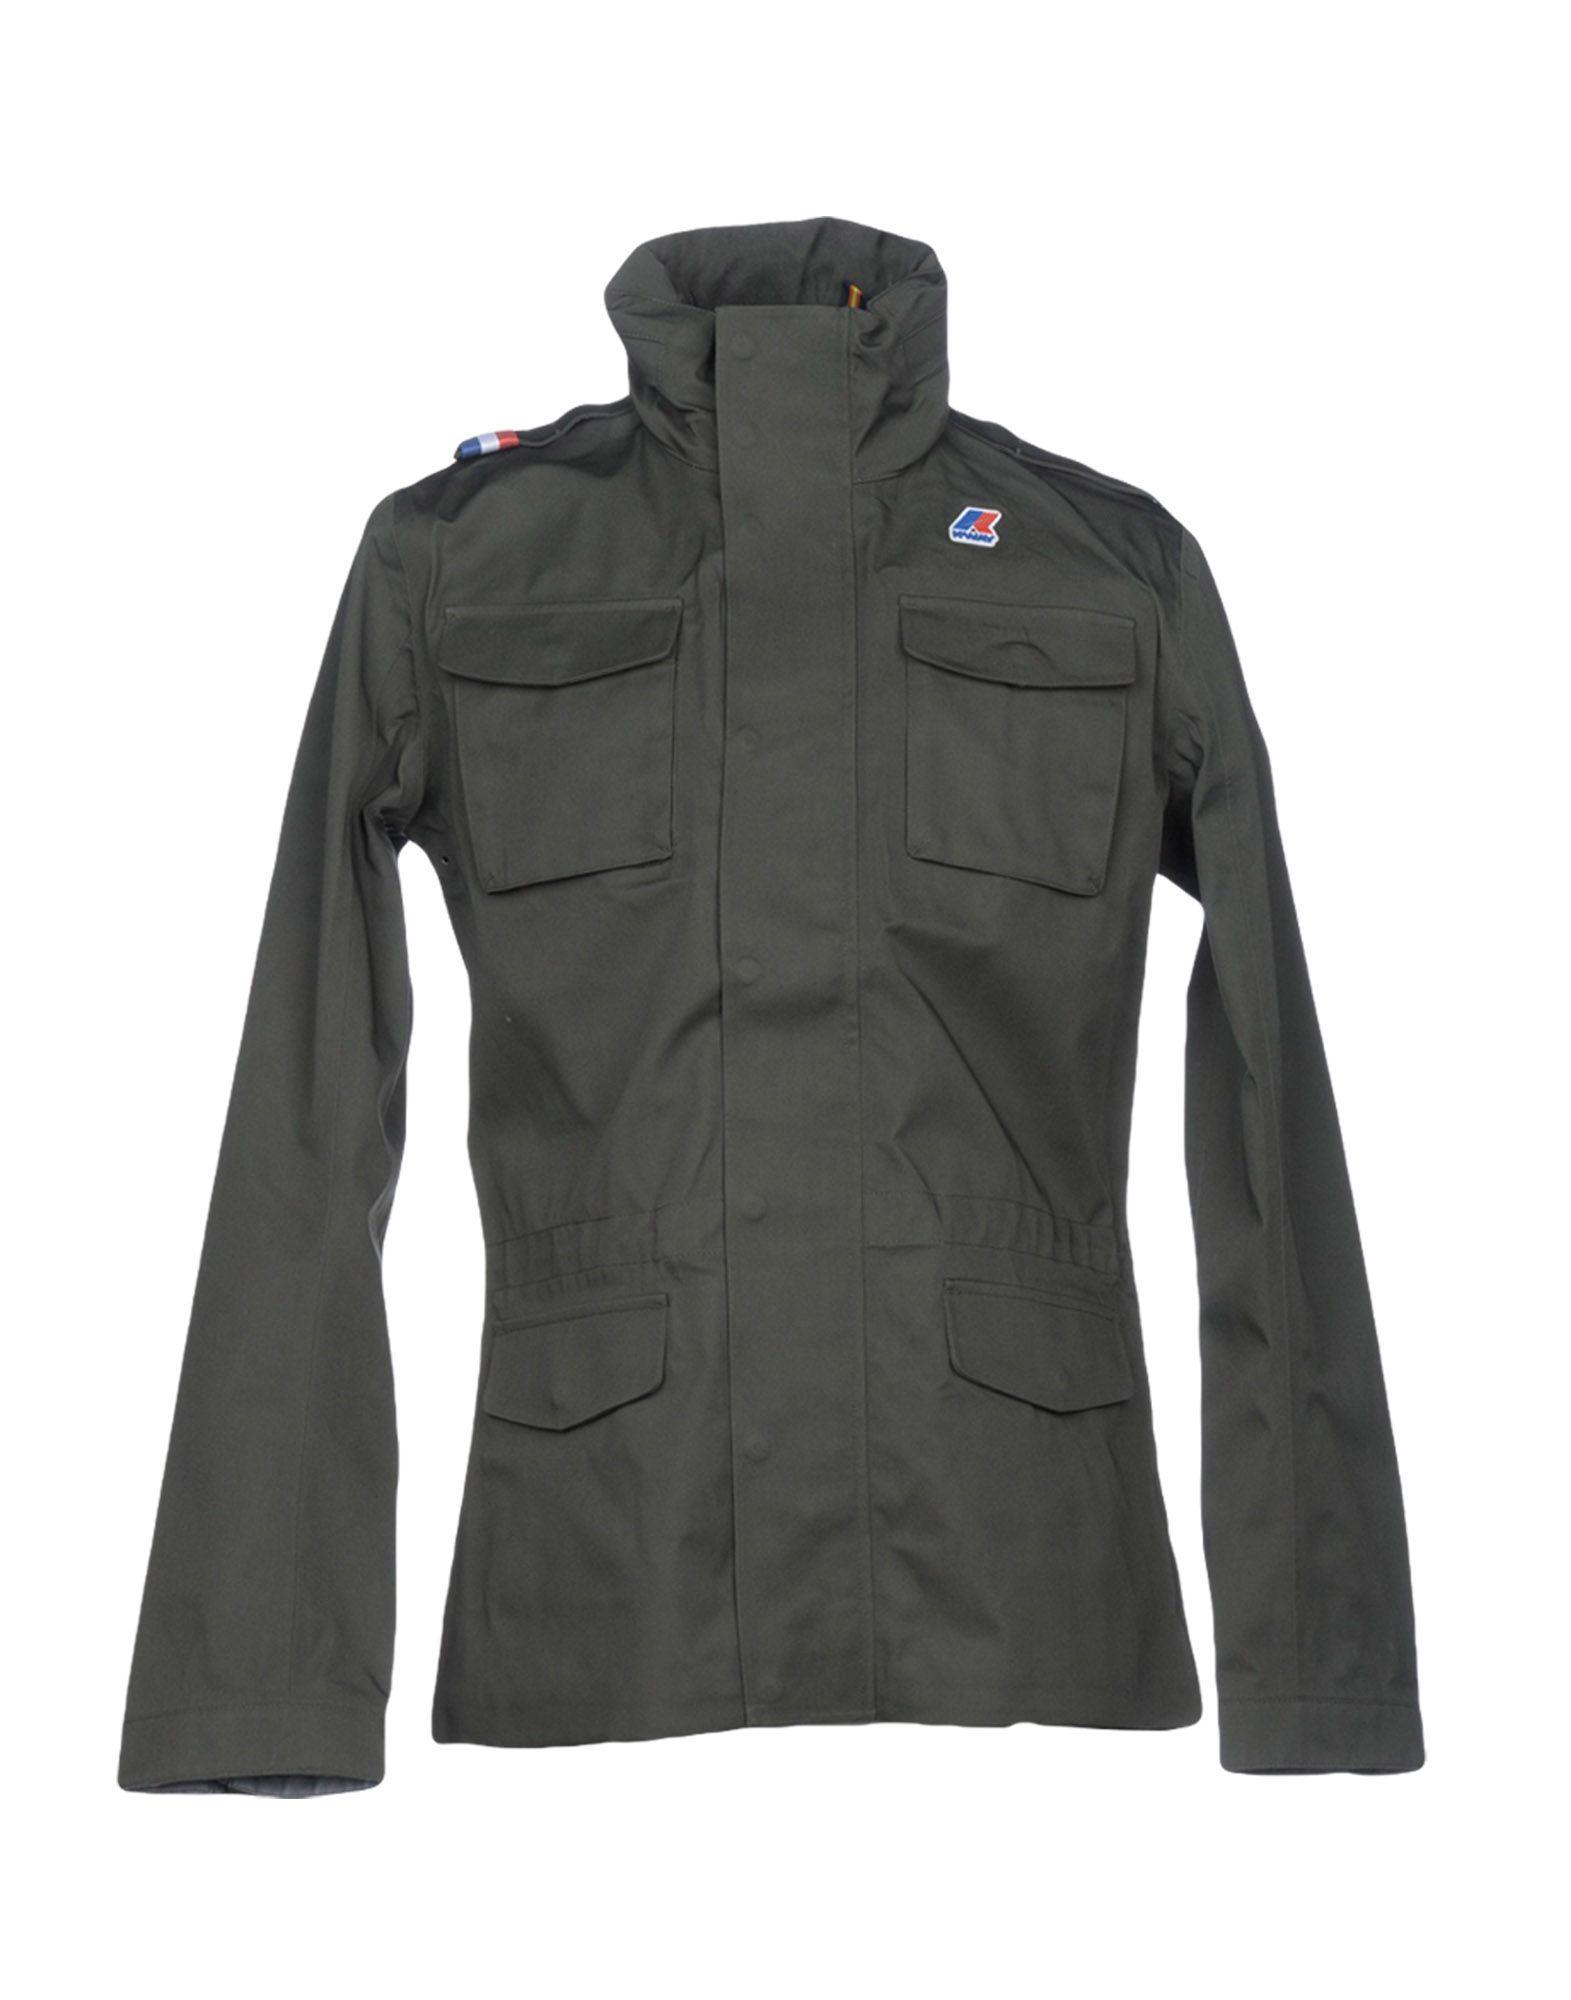 K-way Jacket In Military Green